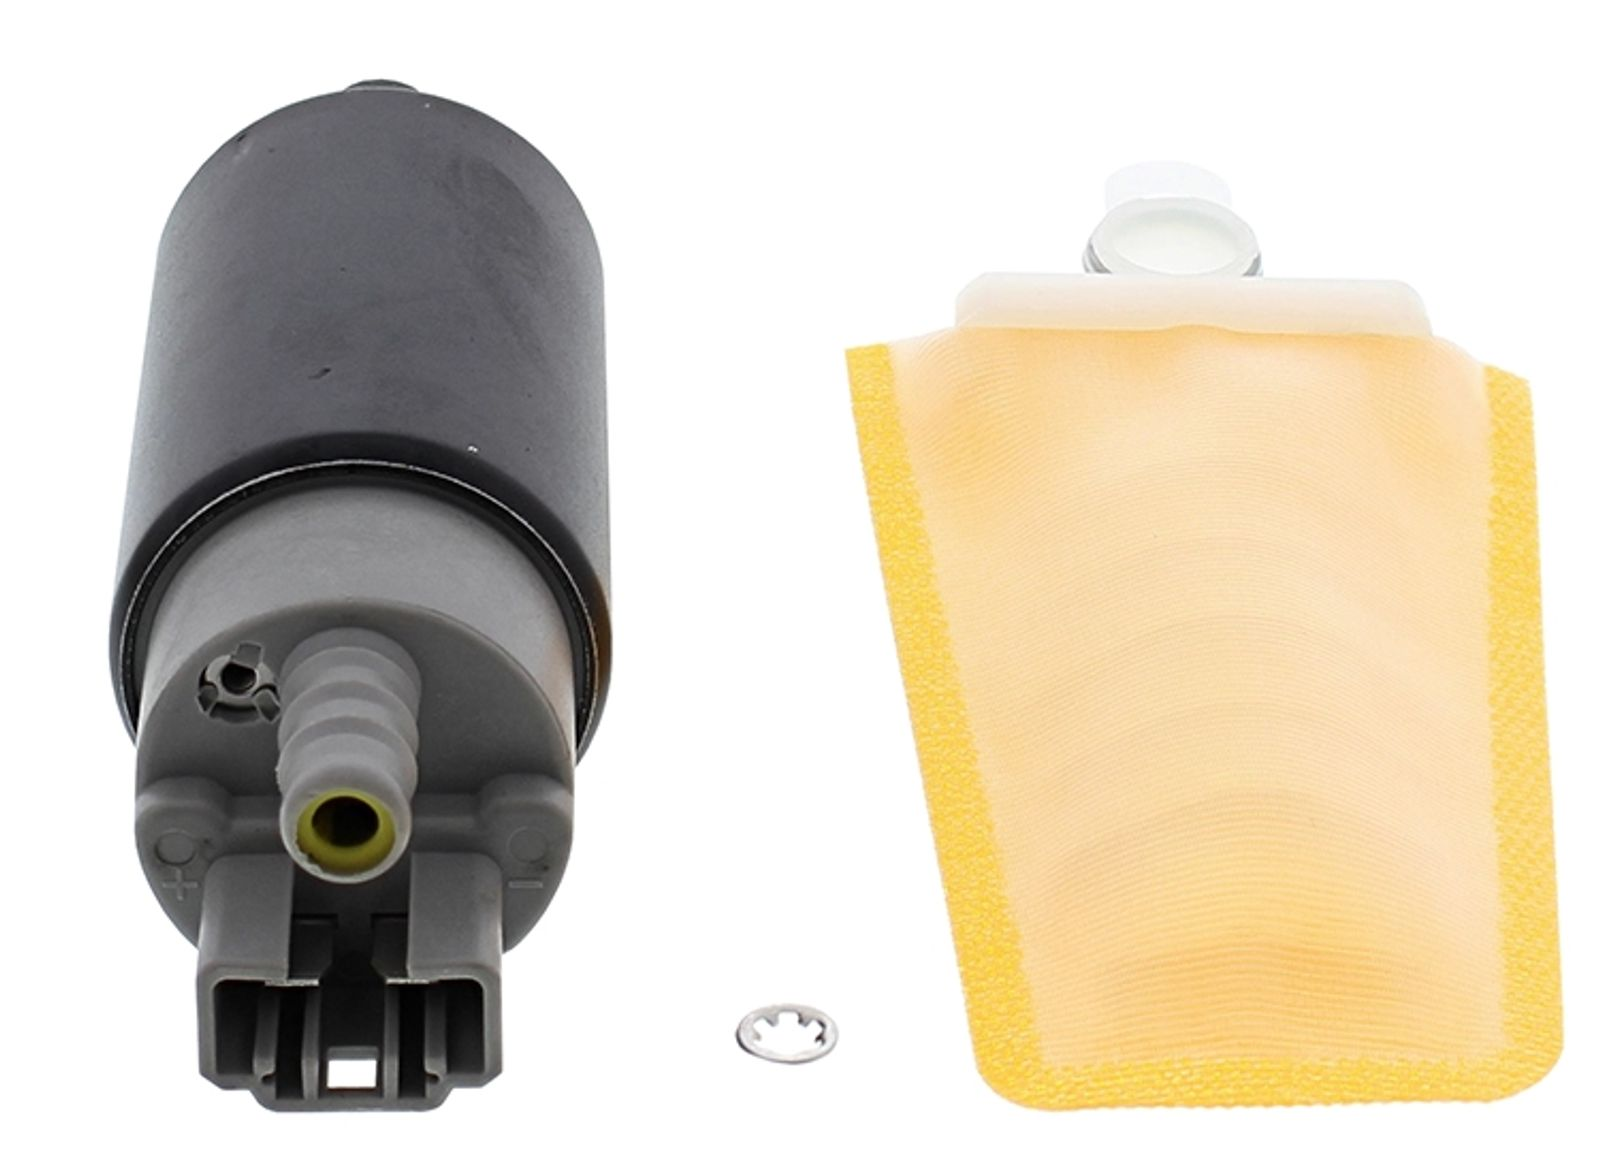 Wrp Fuel Pumps - WRP472023 image